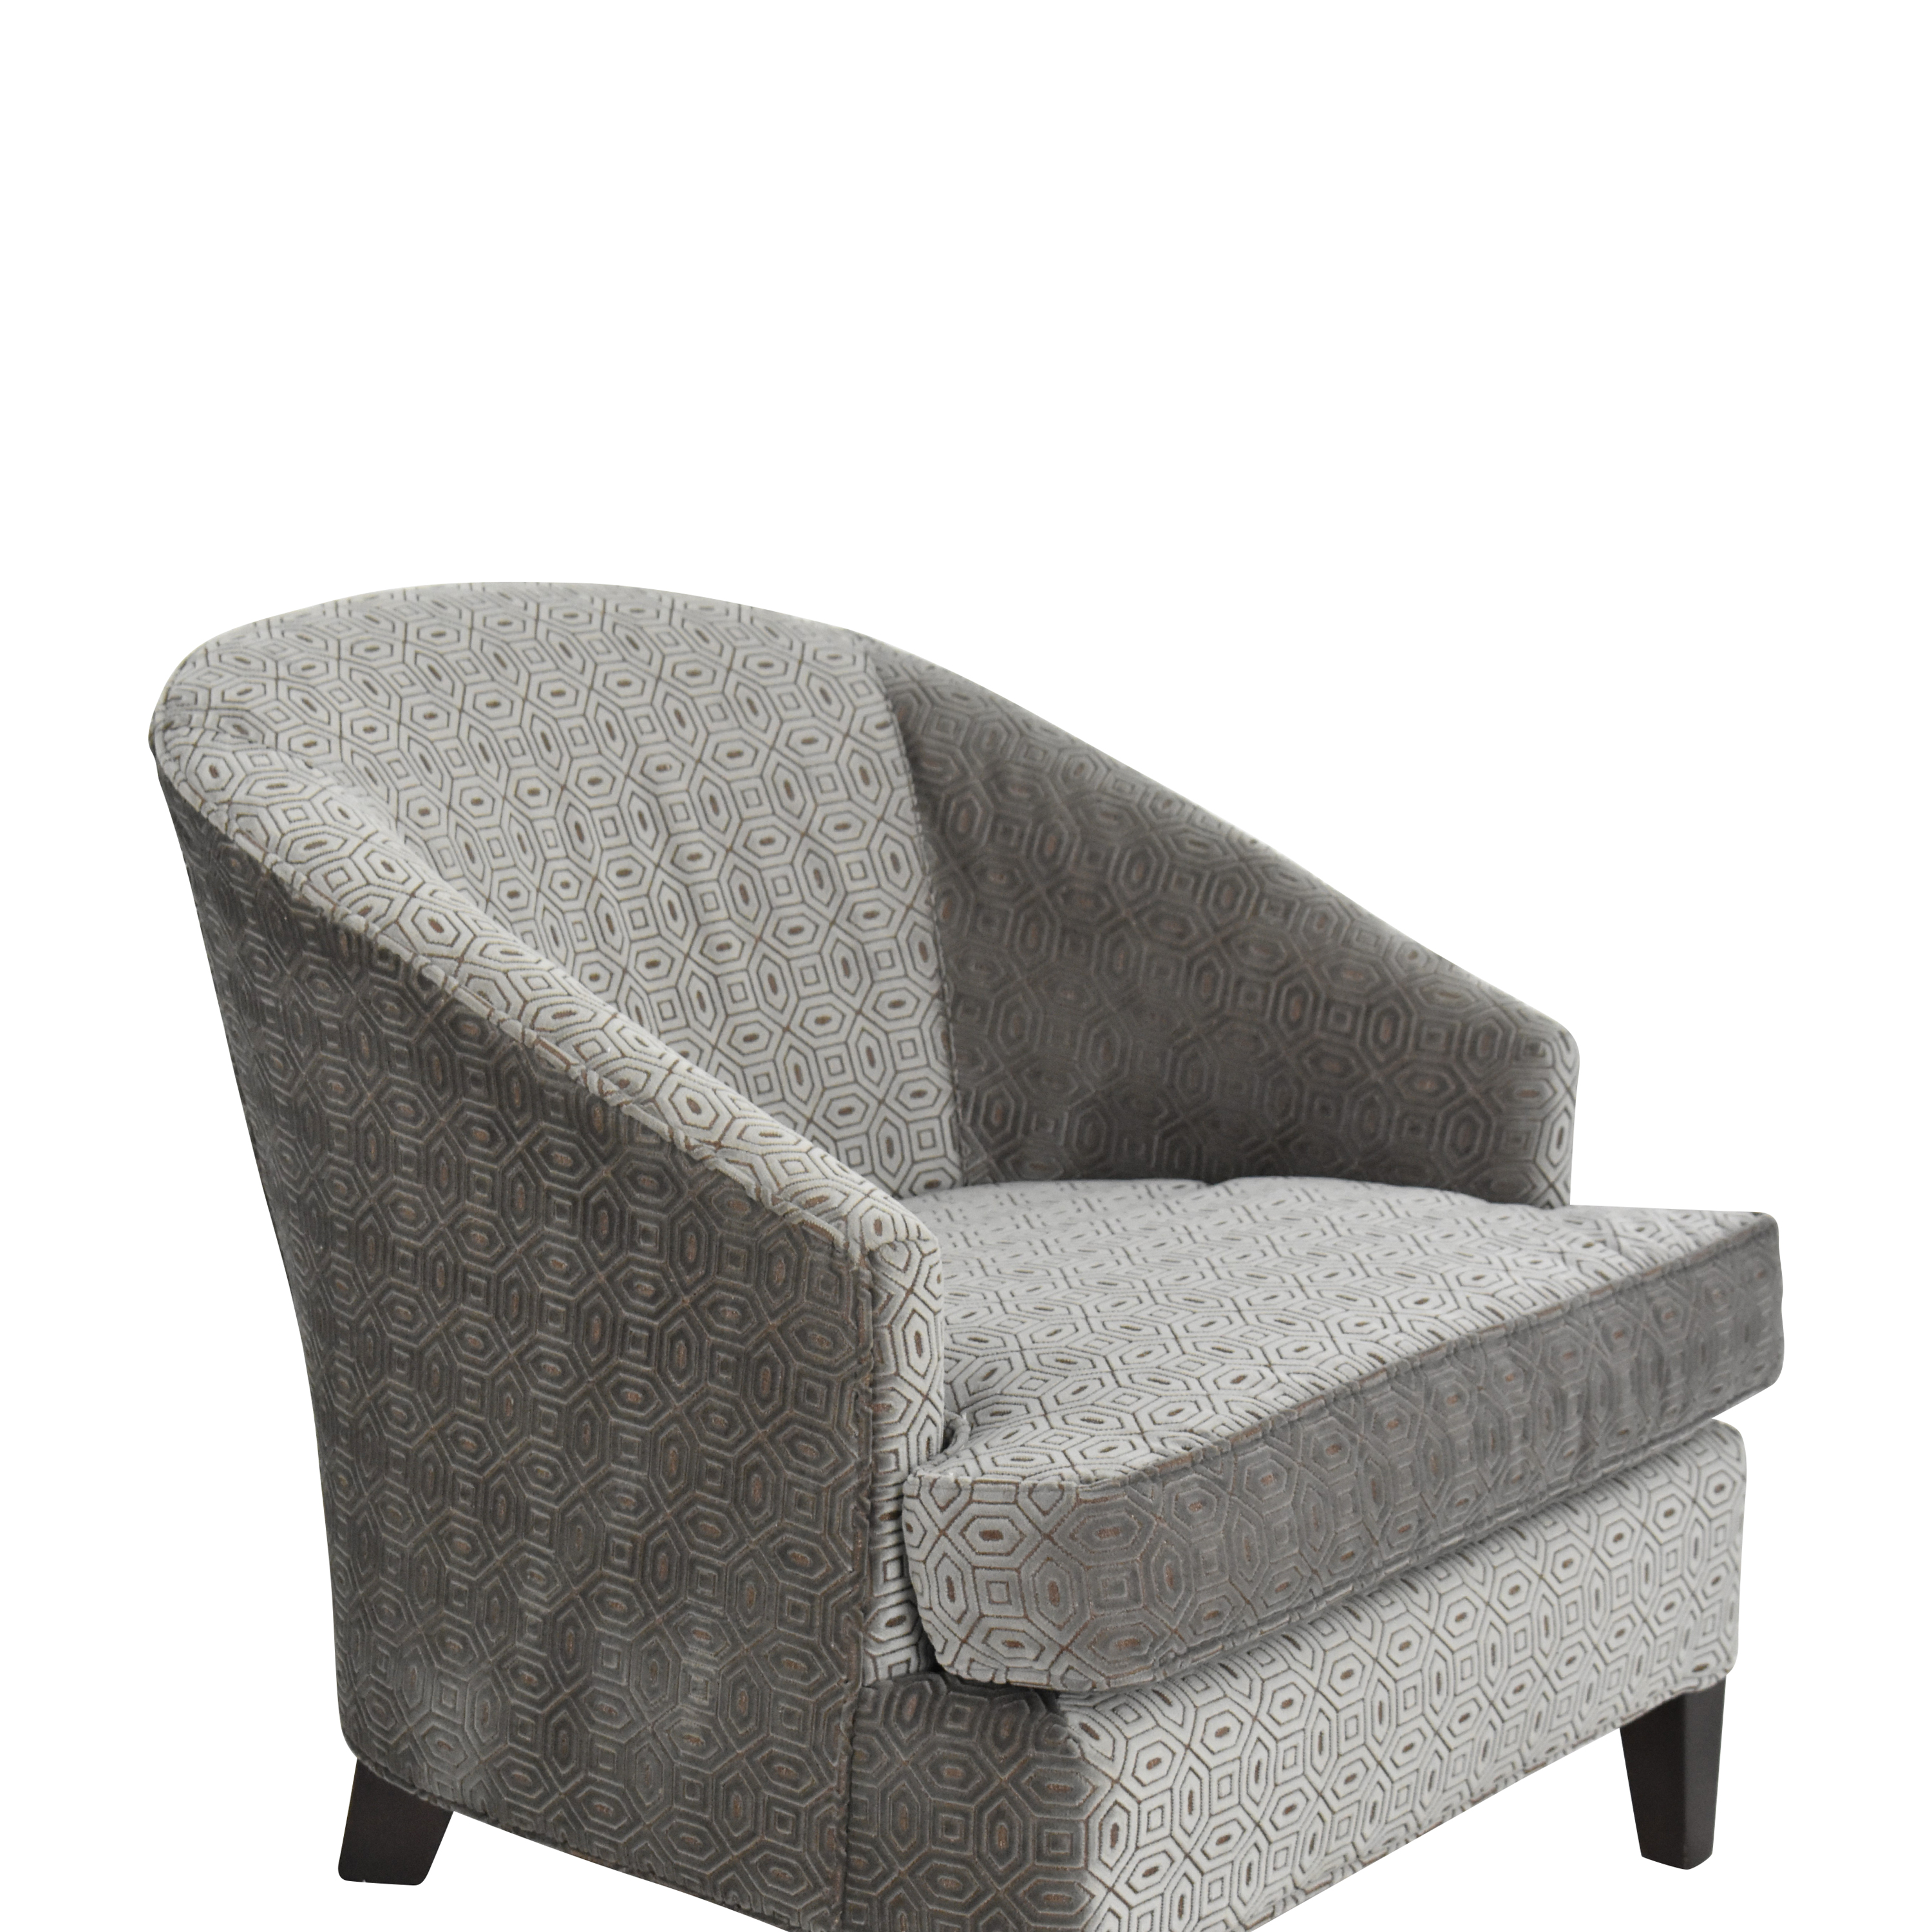 buy Mitchell Gold + Bob Williams Accent Chair Mitchell Gold + Bob Williams Accent Chairs